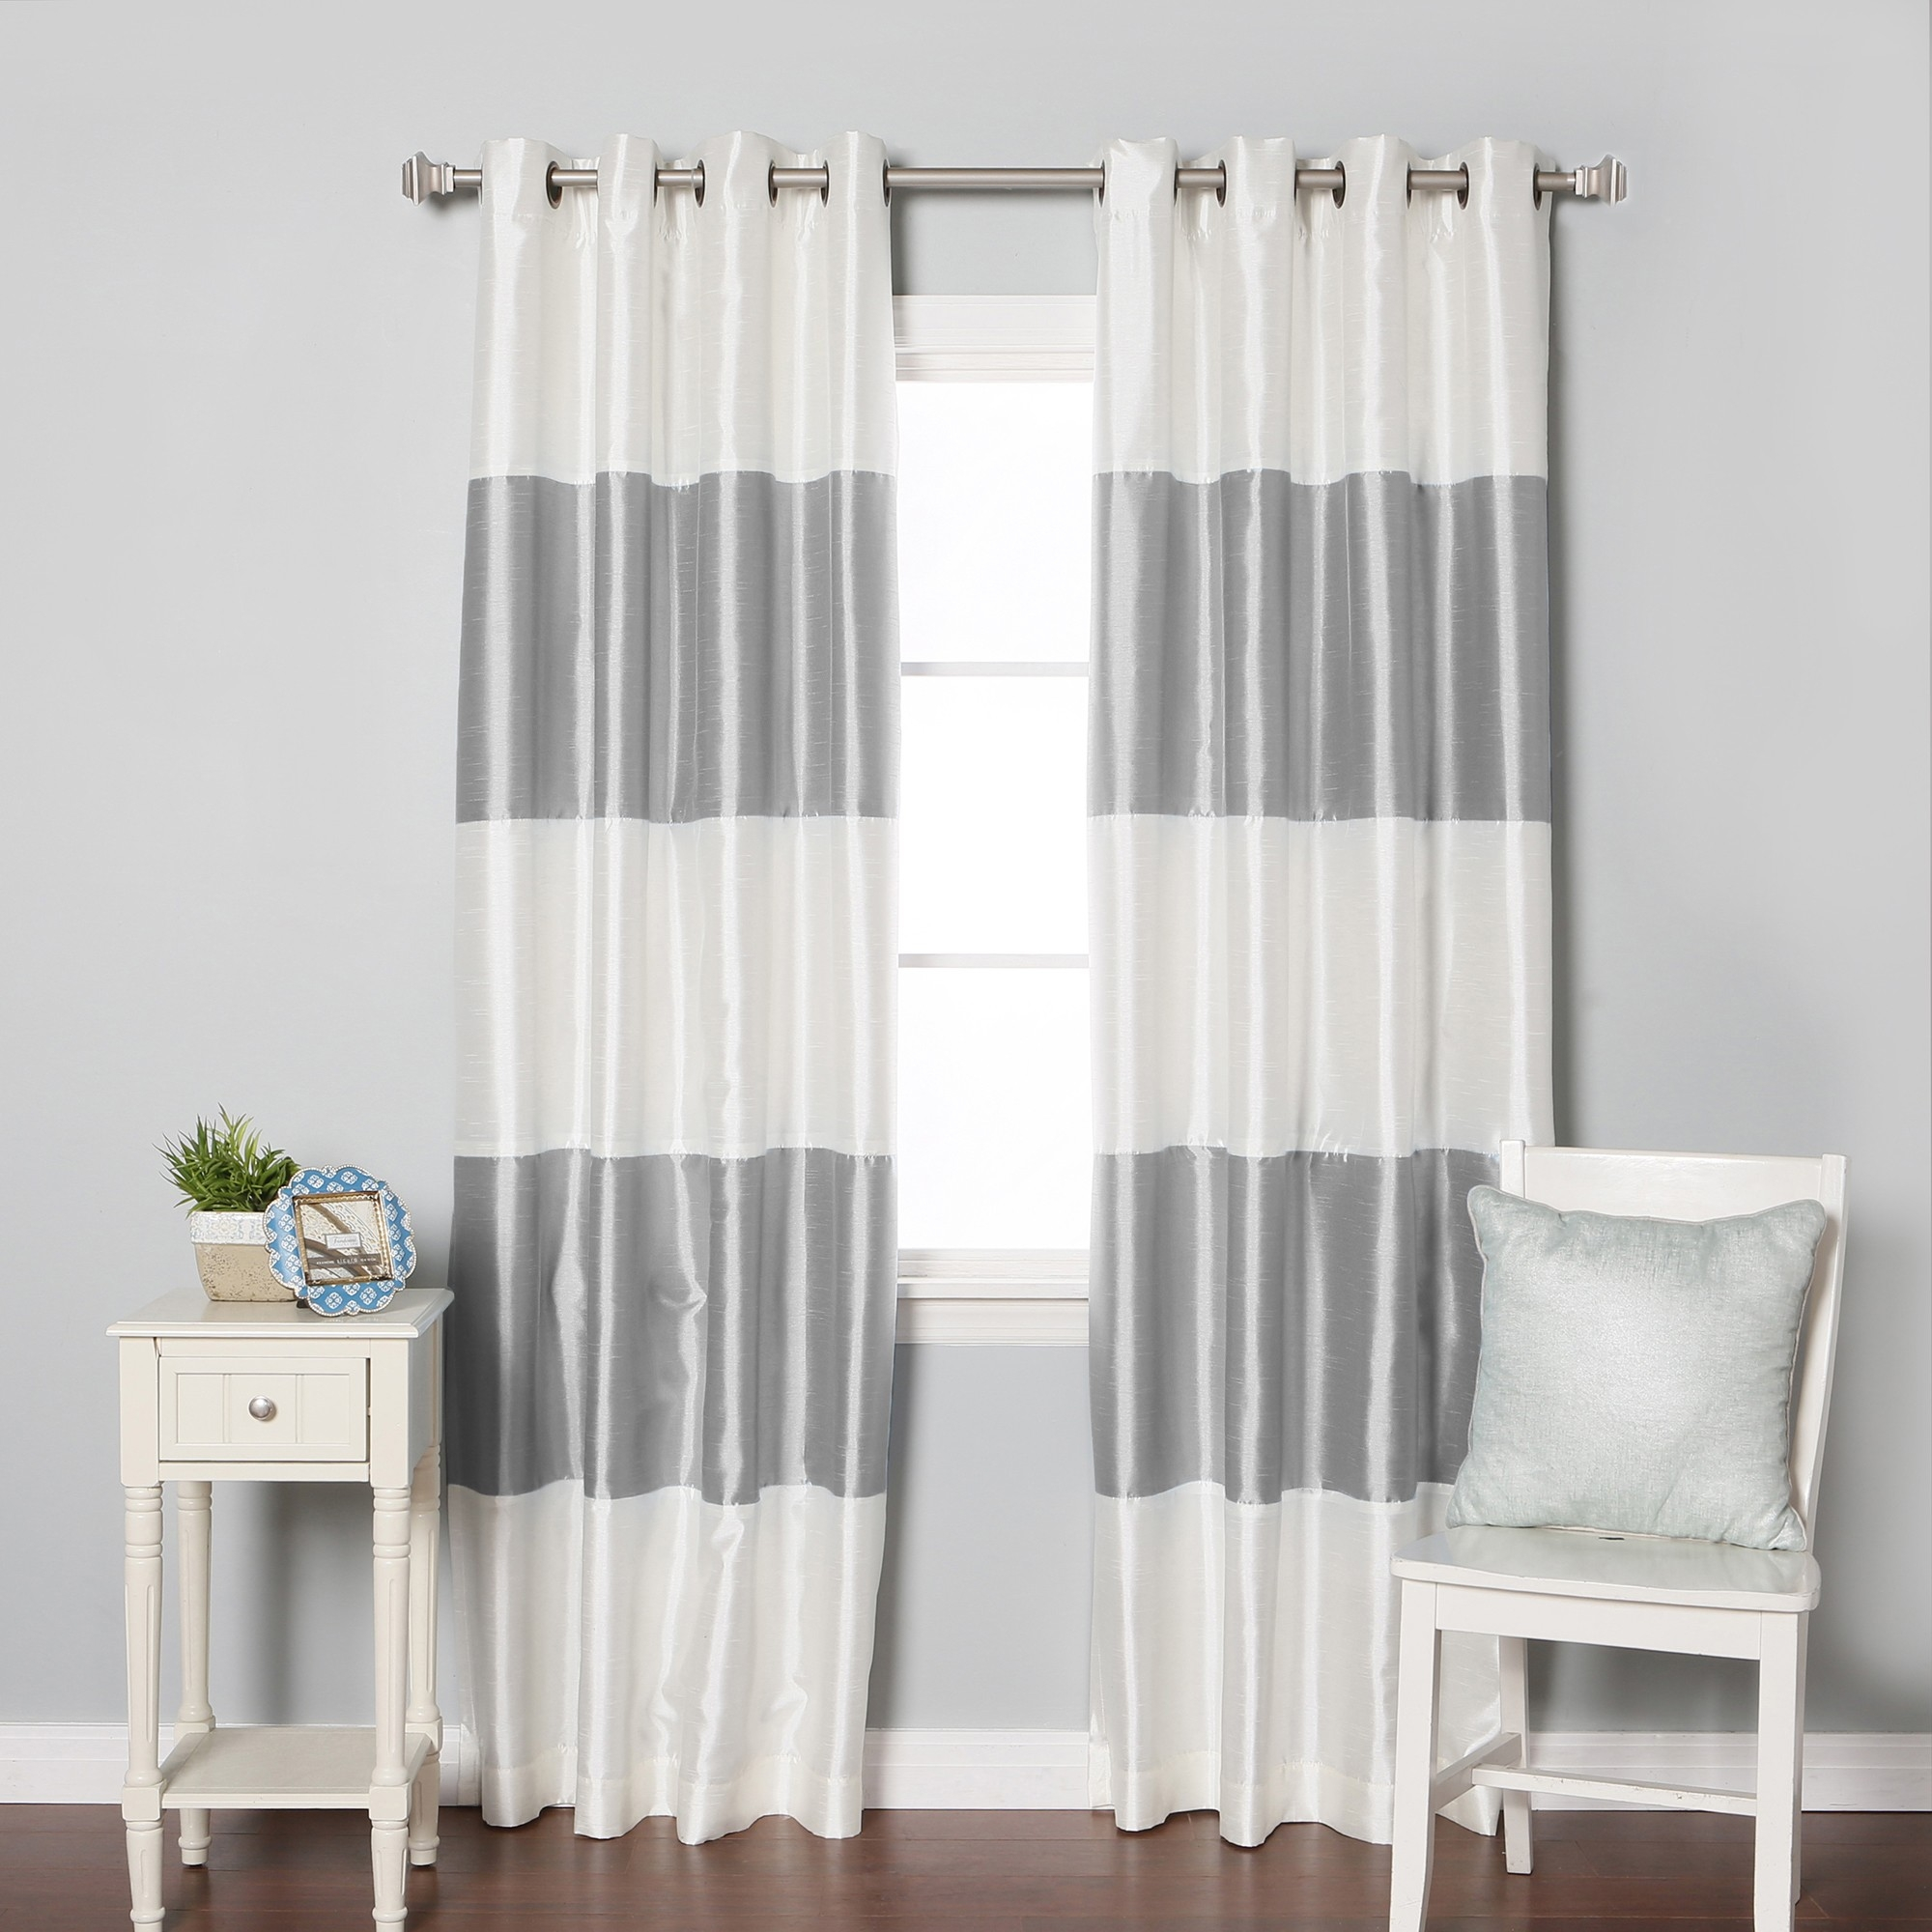 Ideas For Blackout Curtains Nursery Modern Home Interiors With Blackout Curtains For Baby Room (Image 13 of 25)